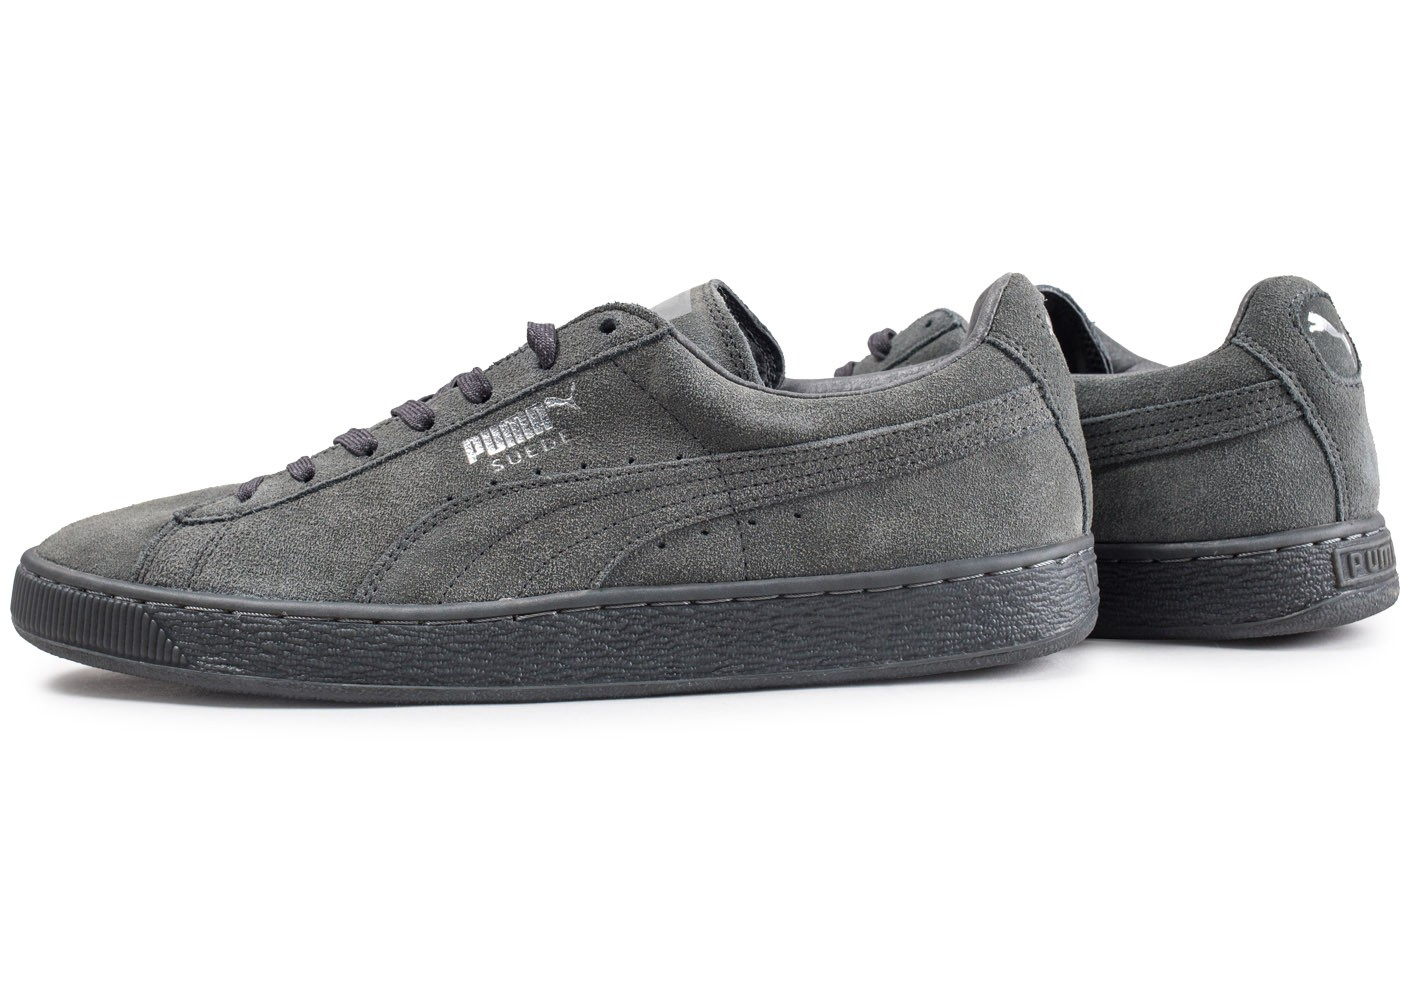 Puma Suede Classic Ref Iced grise Chaussures Baskets homme